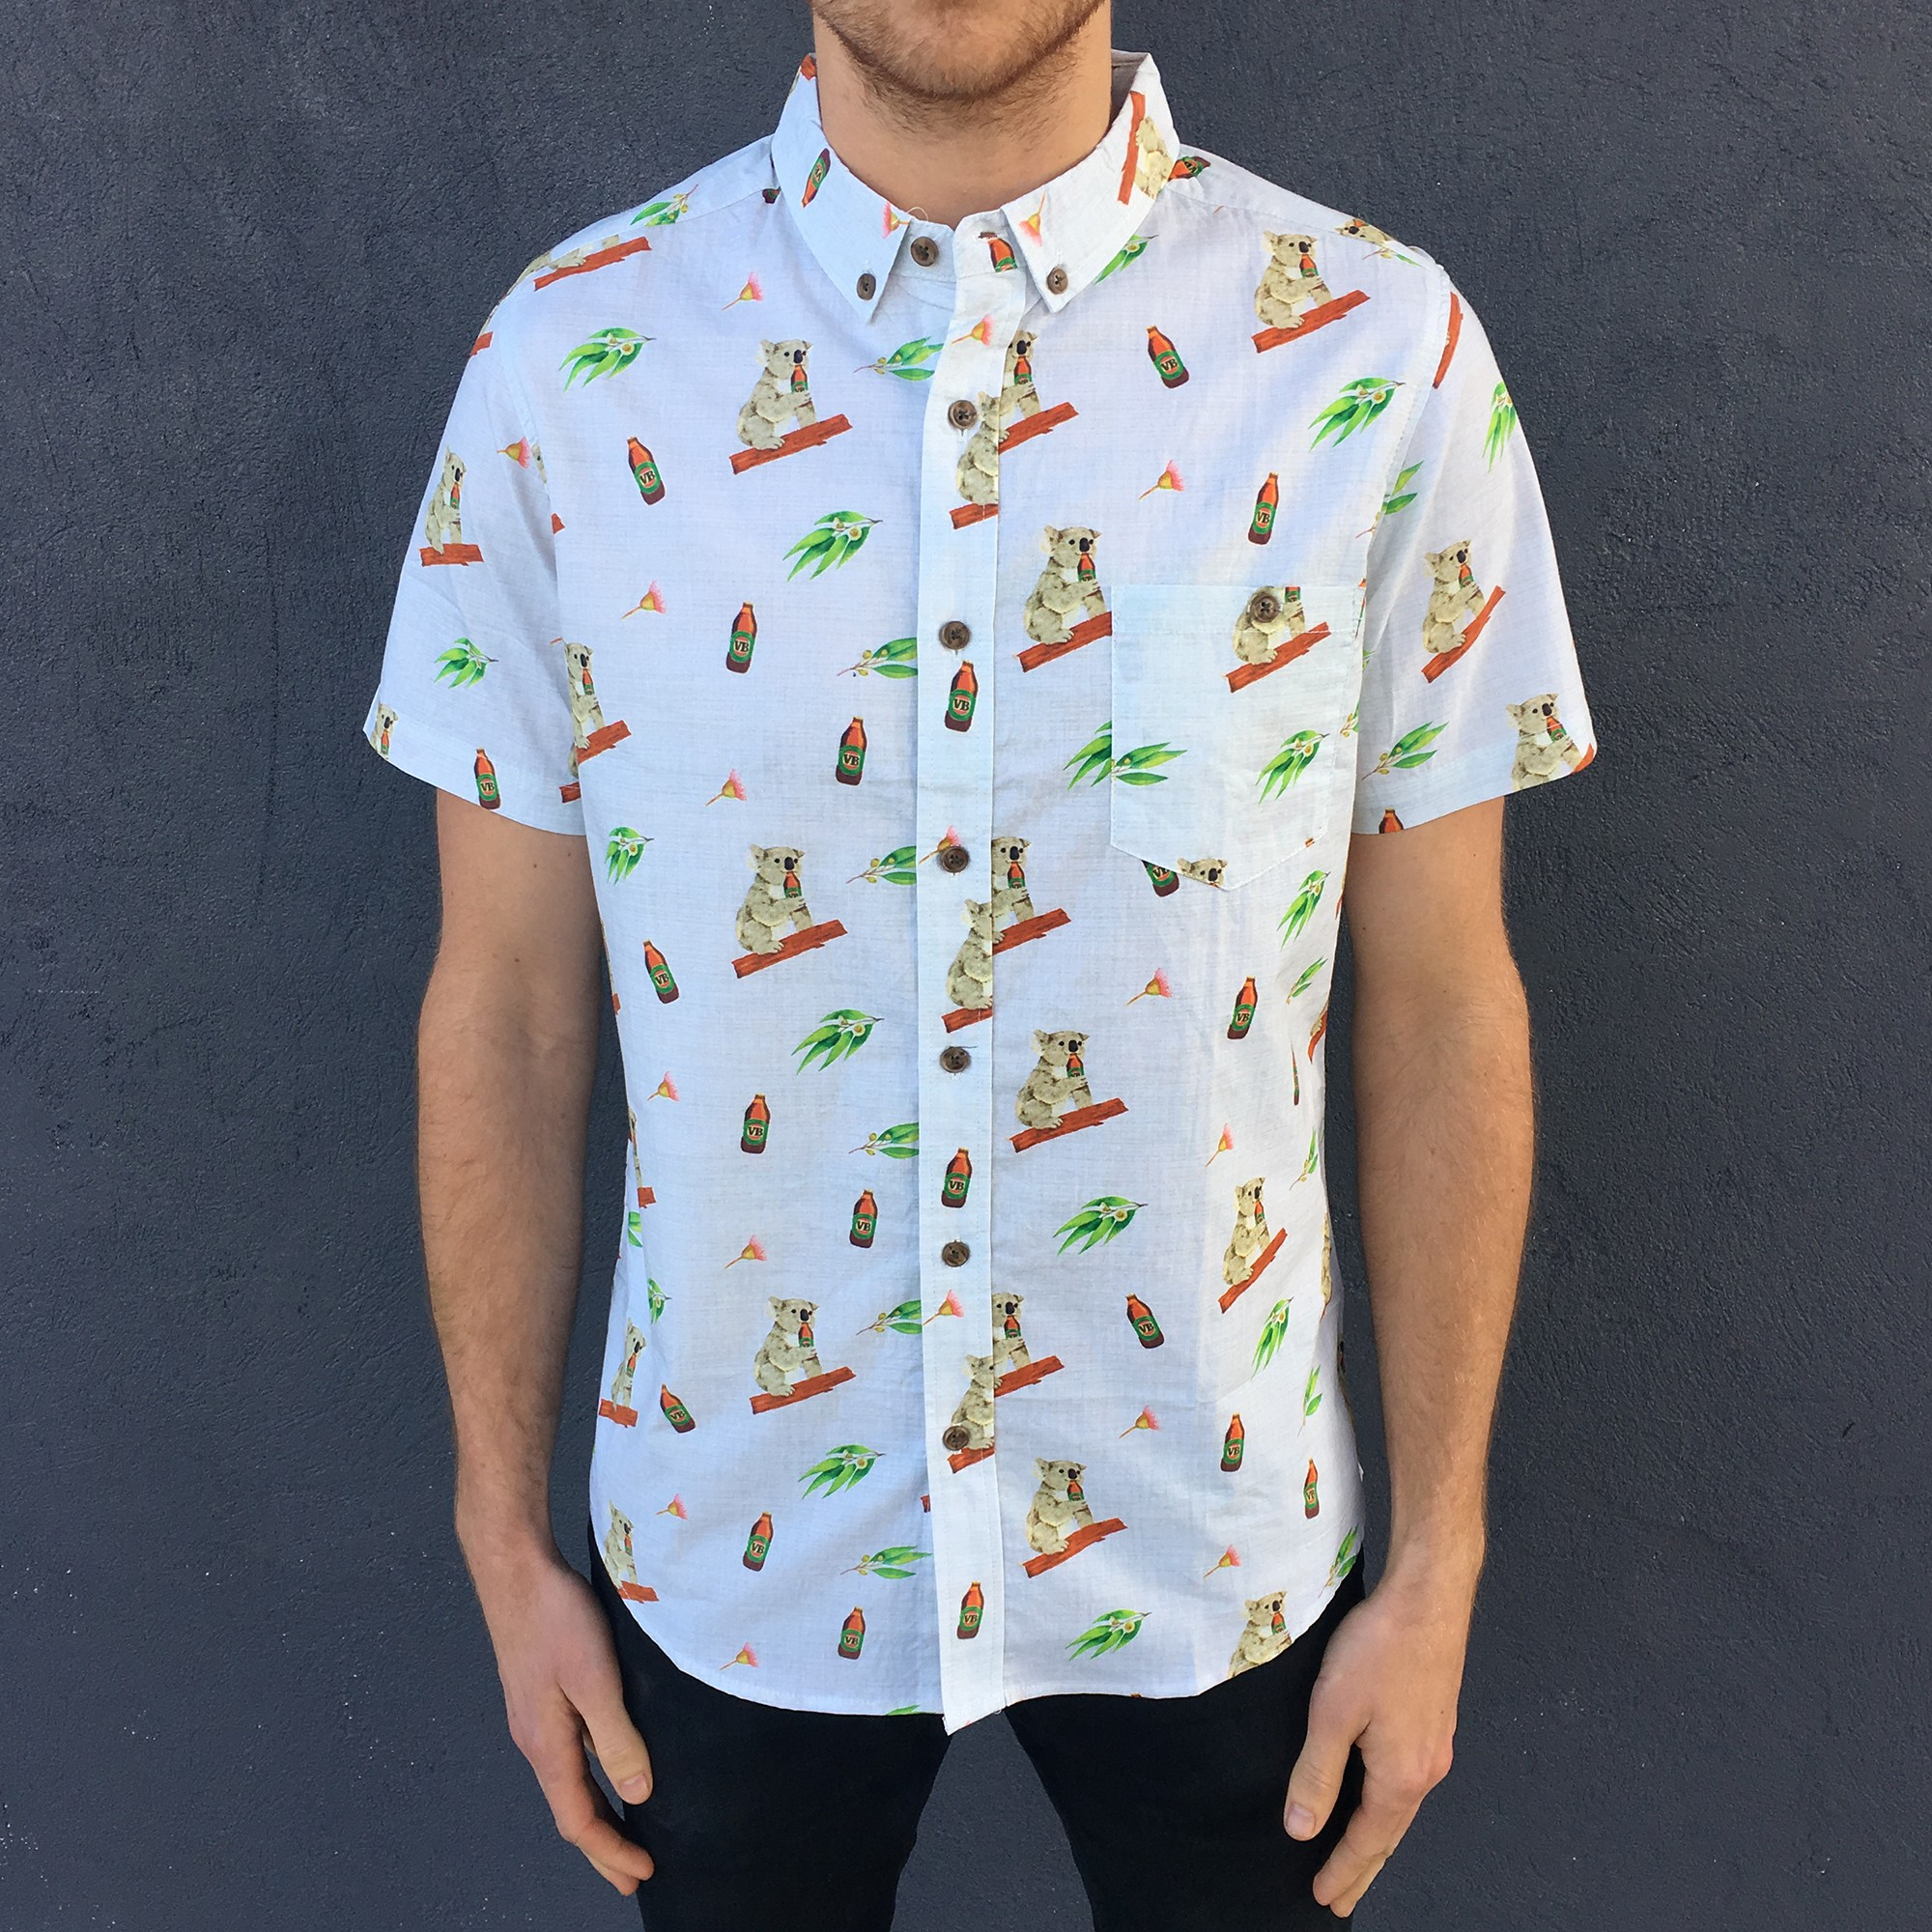 KOALA BEERS BUTTON UP PARTY SHIRT